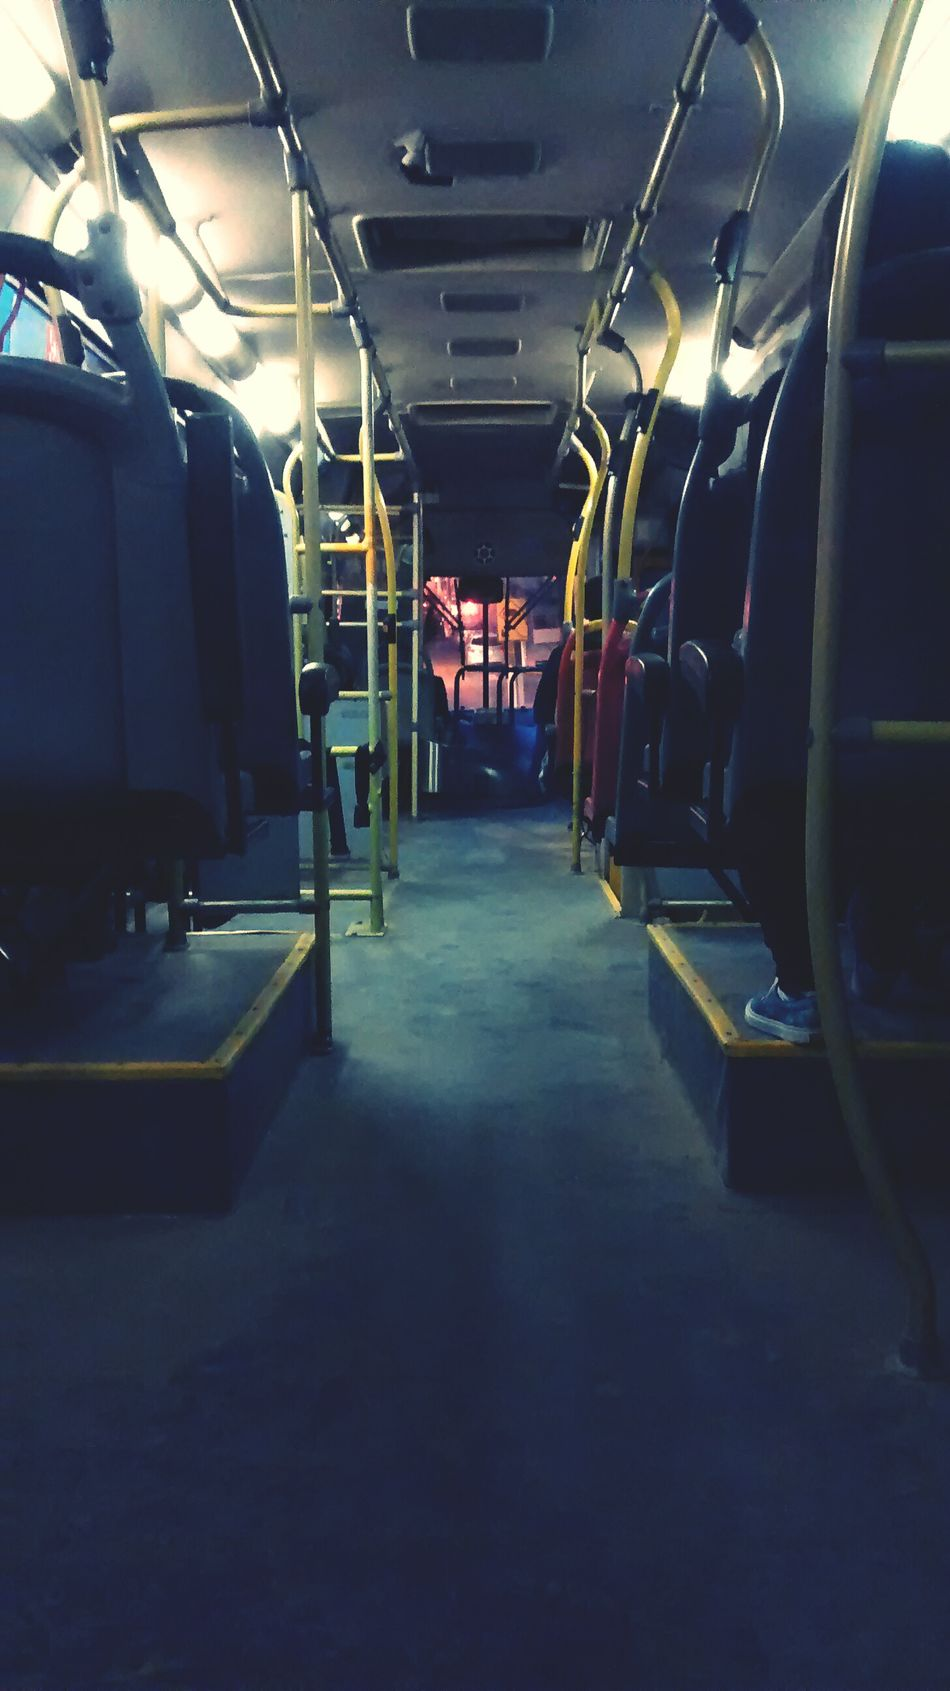 [...]But as the water fills my mouth,it couldn't wash the echoes out...❄ It's So Cold . Bus Ride Working Hard Silence Of The Night Why So Serious?